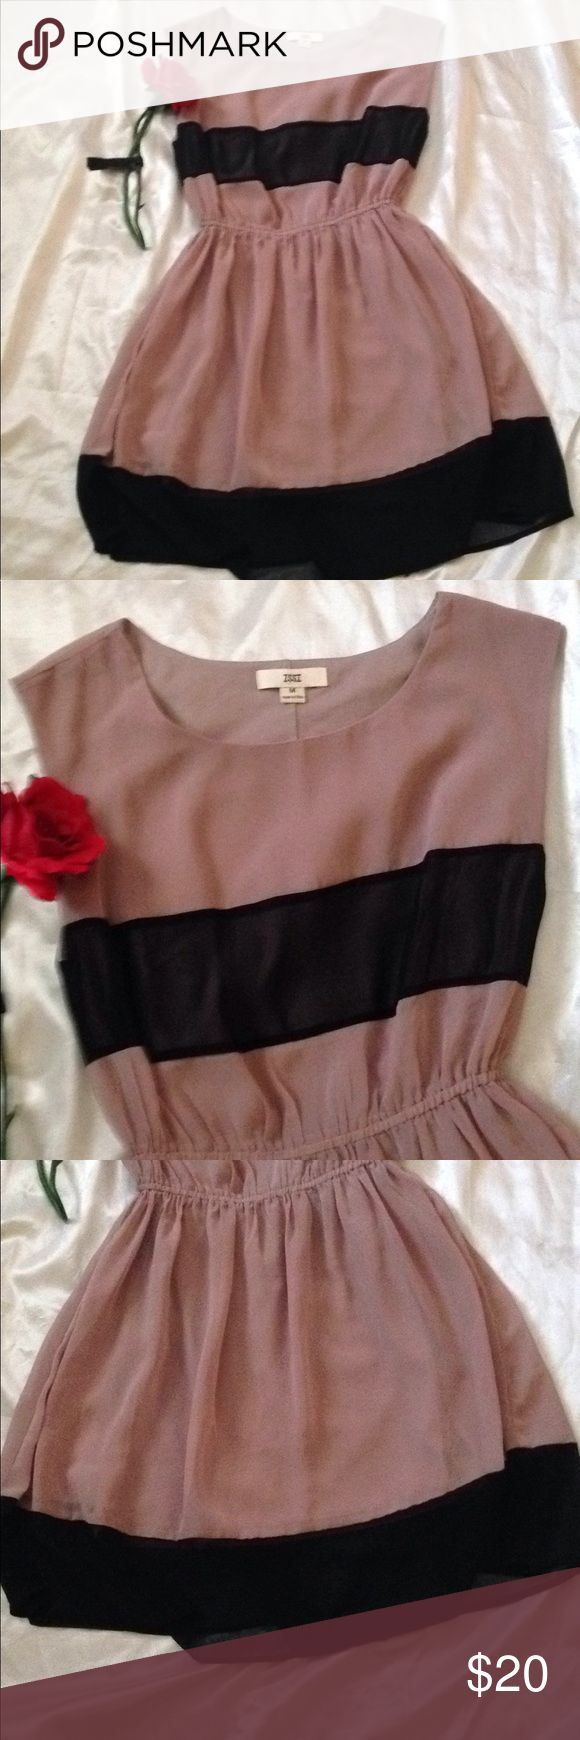 Classy ISSI Dress Beige and Black Perfect dress for work or a special occasion. ISSI Dresses Midi